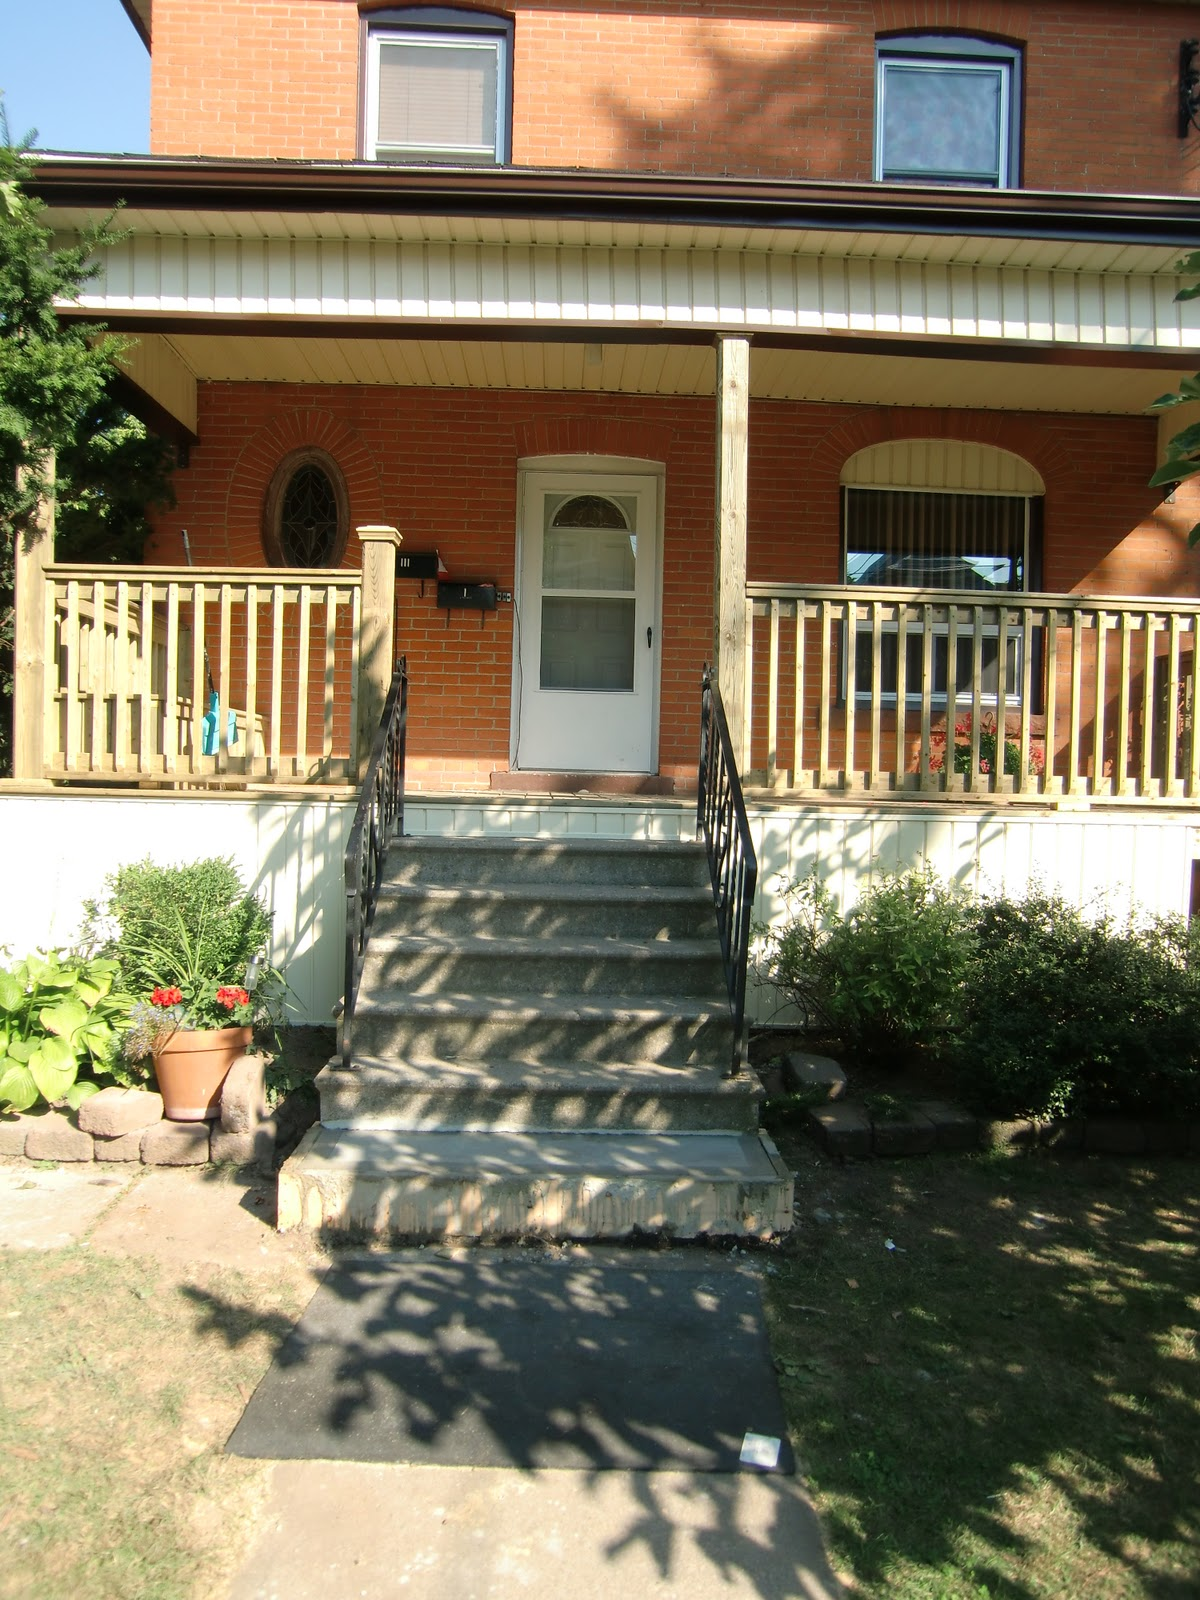 A Board and Beyond Home Improvements: Front Porch - Steps